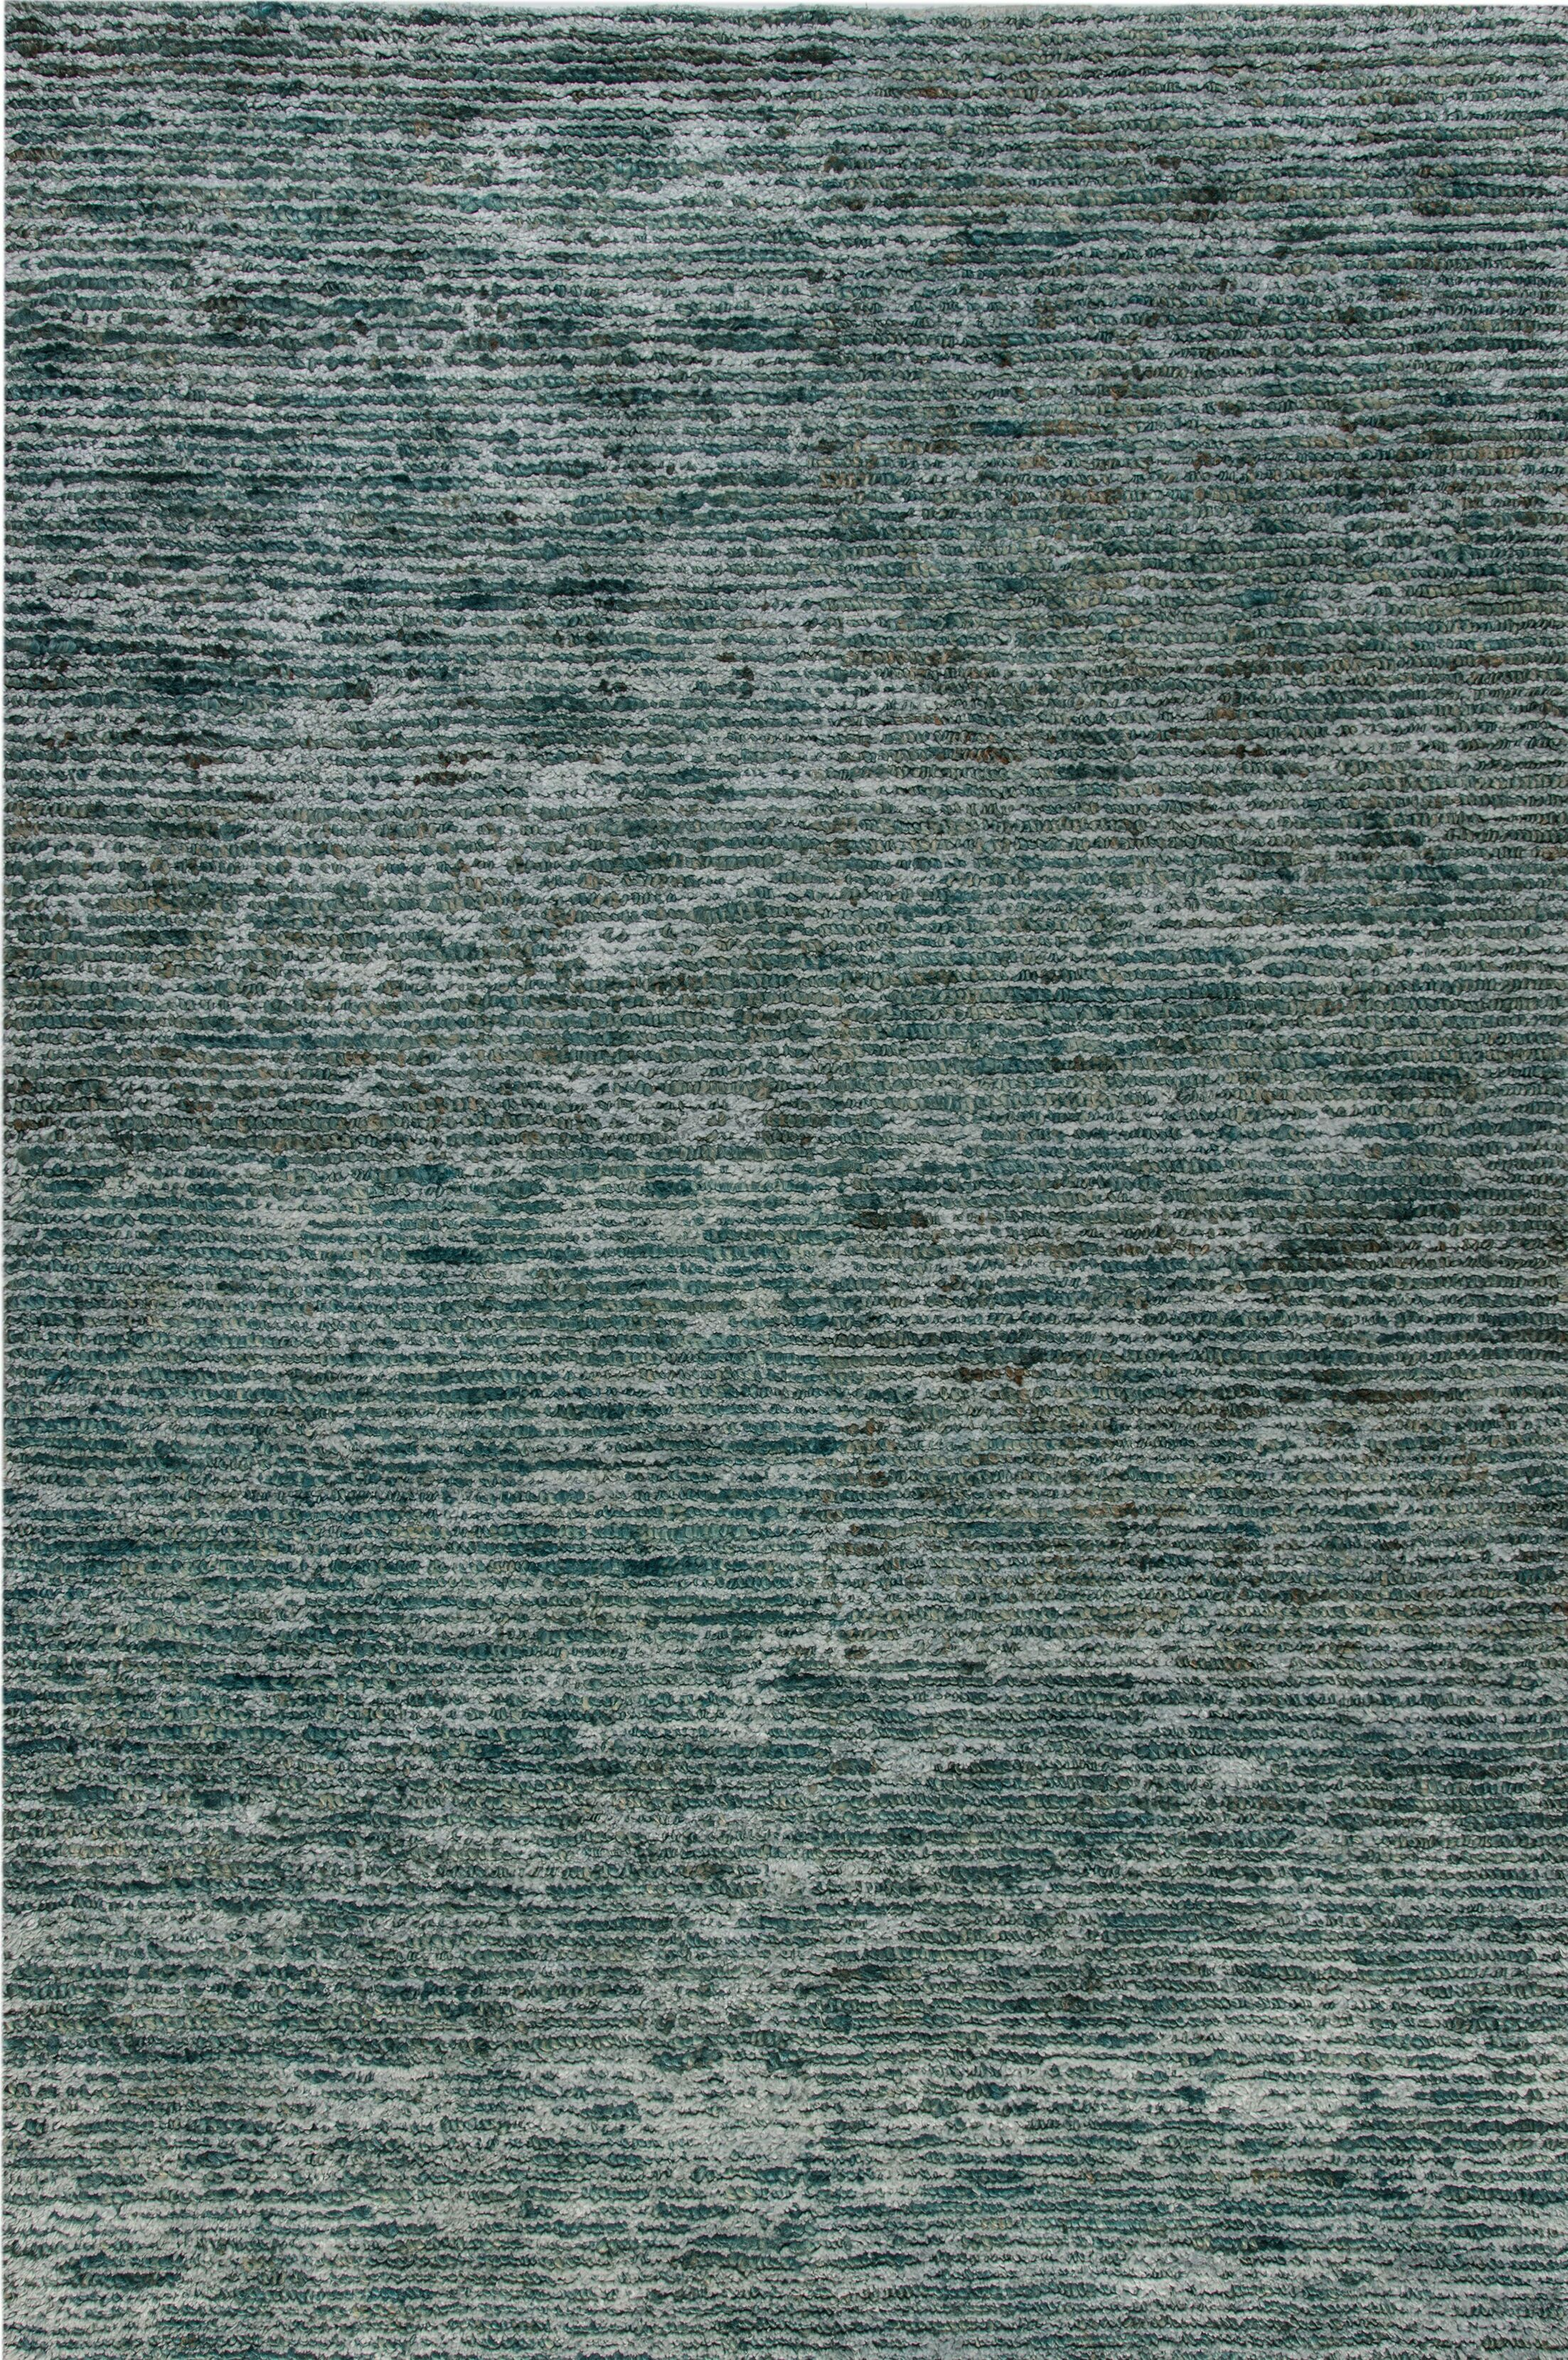 Gem Hand-Woven Blue Area Rug Rug Size: Rectangle 5' x 8'